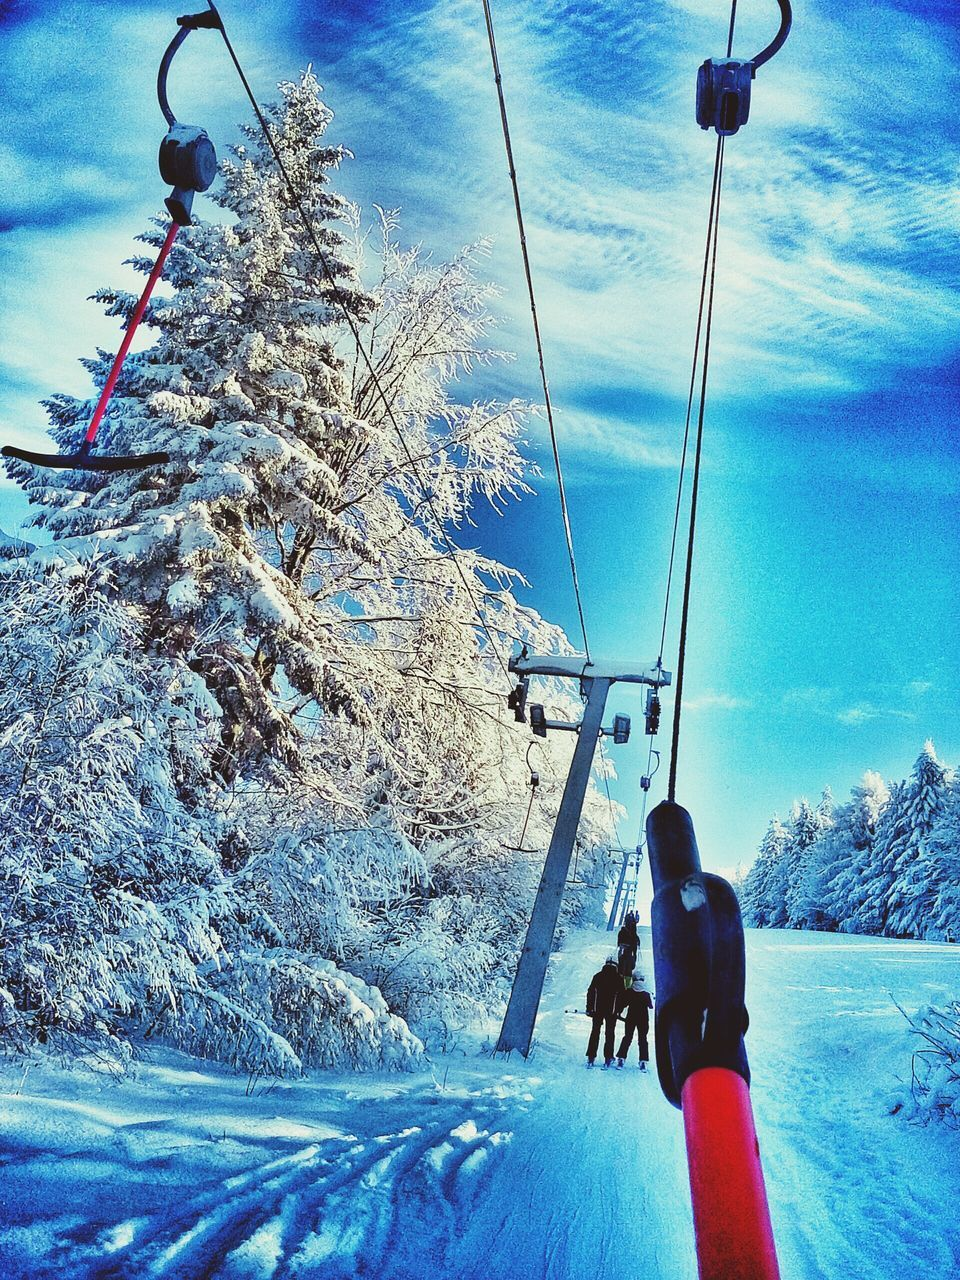 snow, cold temperature, winter, weather, real people, nature, leisure activity, frozen, sky, adventure, day, lifestyles, outdoors, tree, ski lift, beauty in nature, vacations, transportation, mountain, full length, men, cloud - sky, snowcapped mountain, cable, overhead cable car, scenics, extreme sports, warm clothing, people